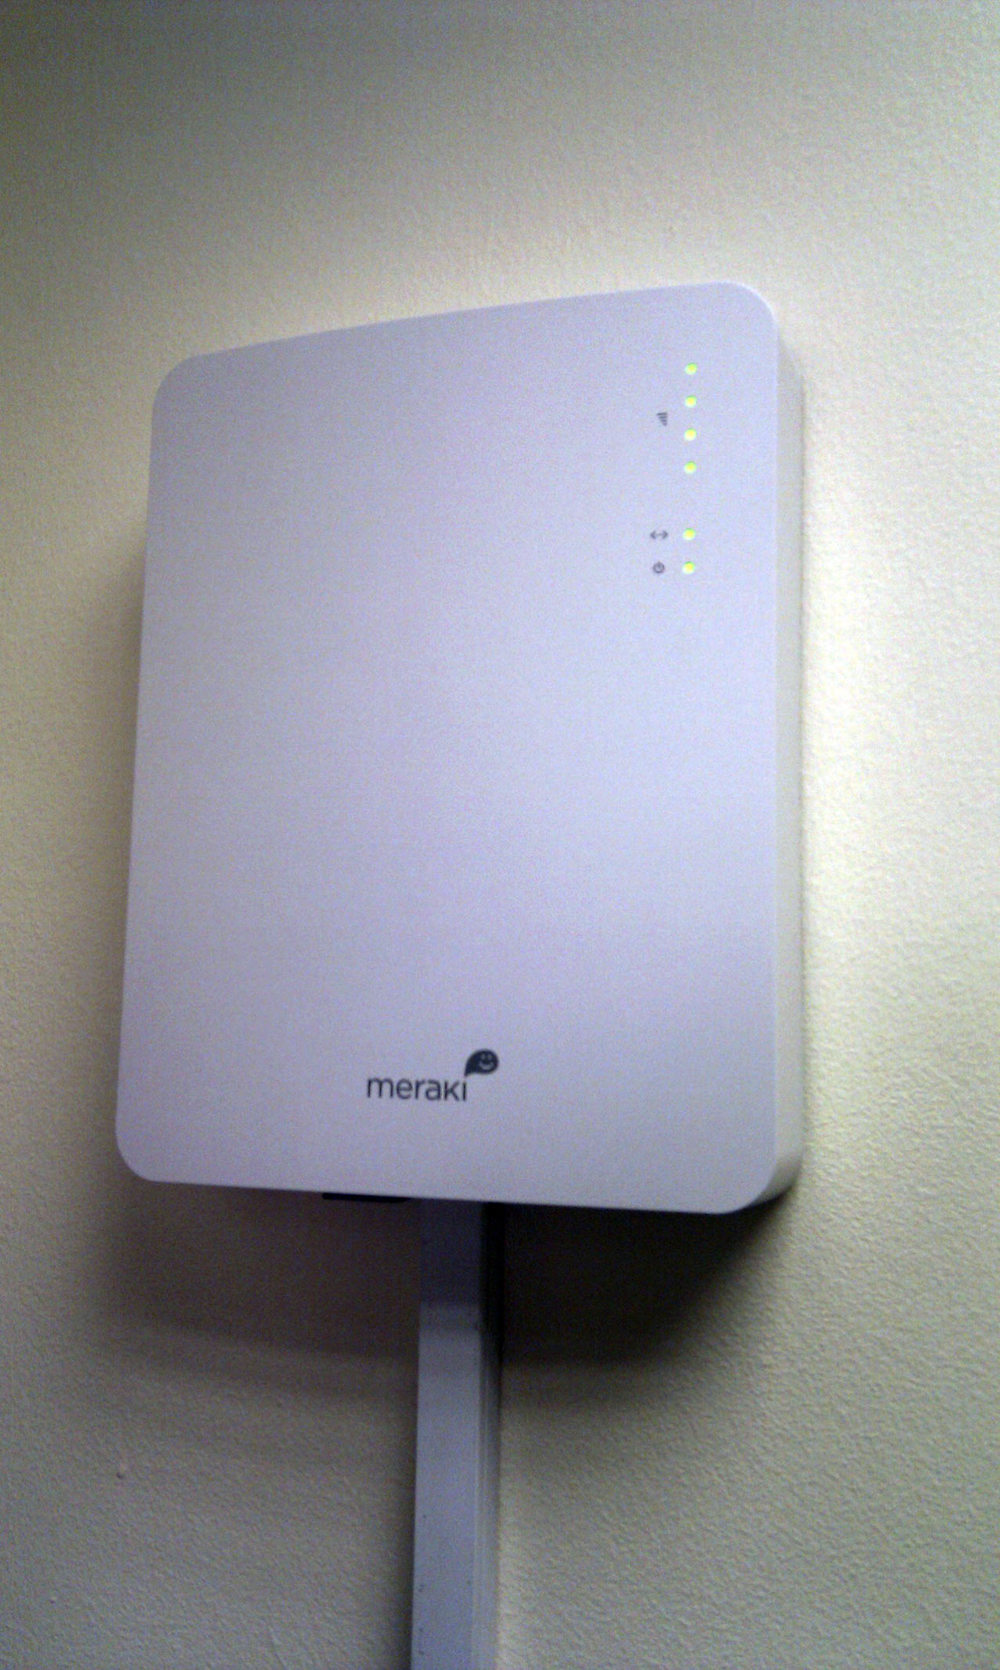 Meraki MR11 Access Point.